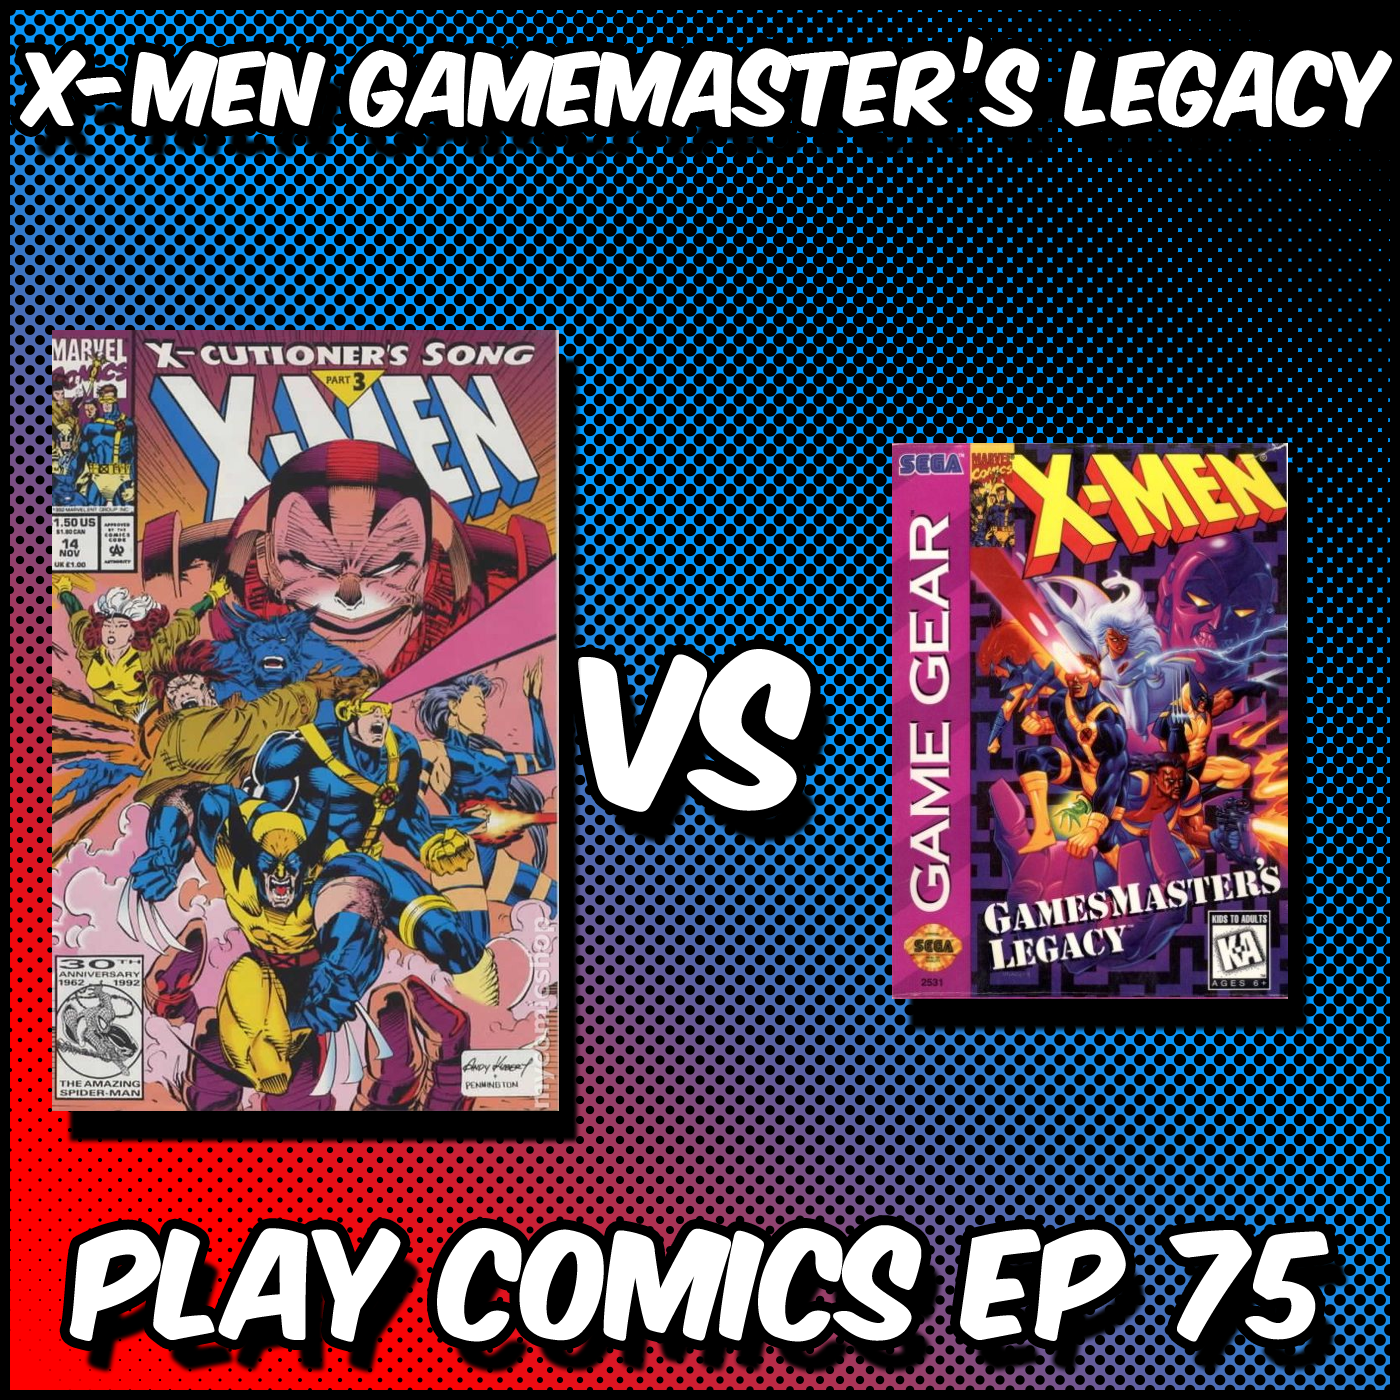 X-Men Gamemaster's Legacy with L.W. Salinas